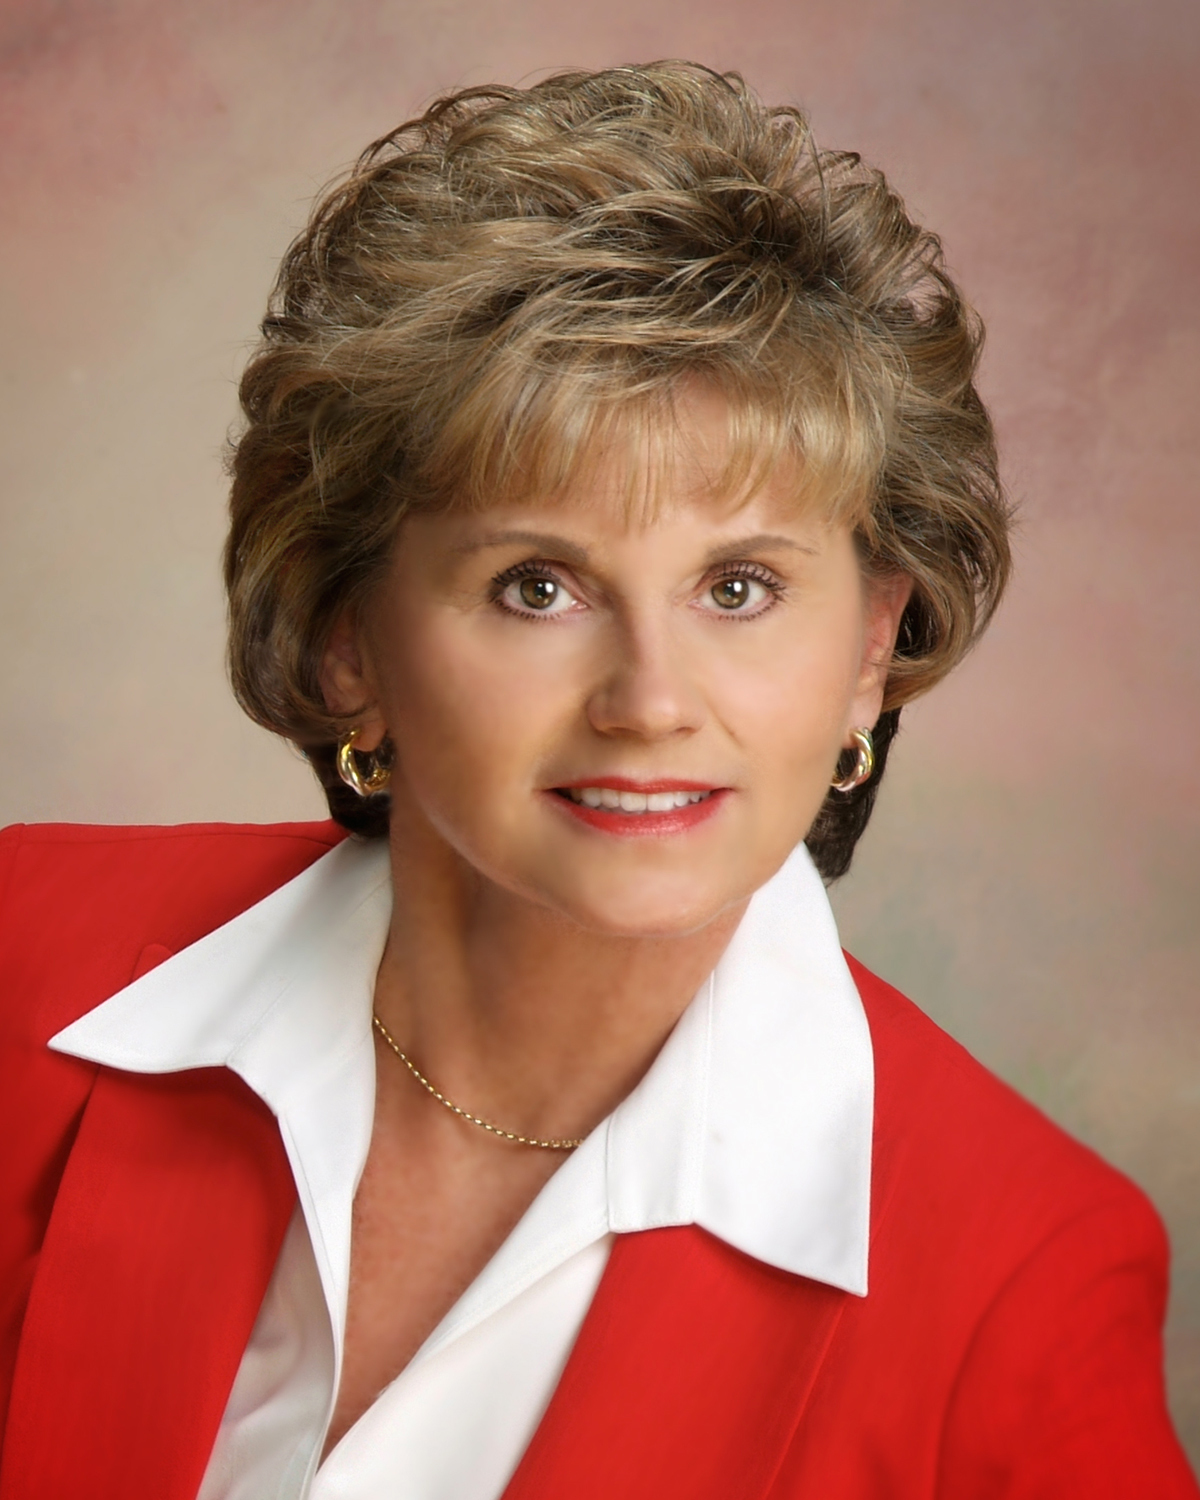 Dr. Ann Bowles, Vice President for Academic Affairs at Spartanburg Methodist College, recently received the prestigious Woman of Accomplishment Award from the Business and Professional Women Foundation of South Carolina. (Photo: Business Wire)